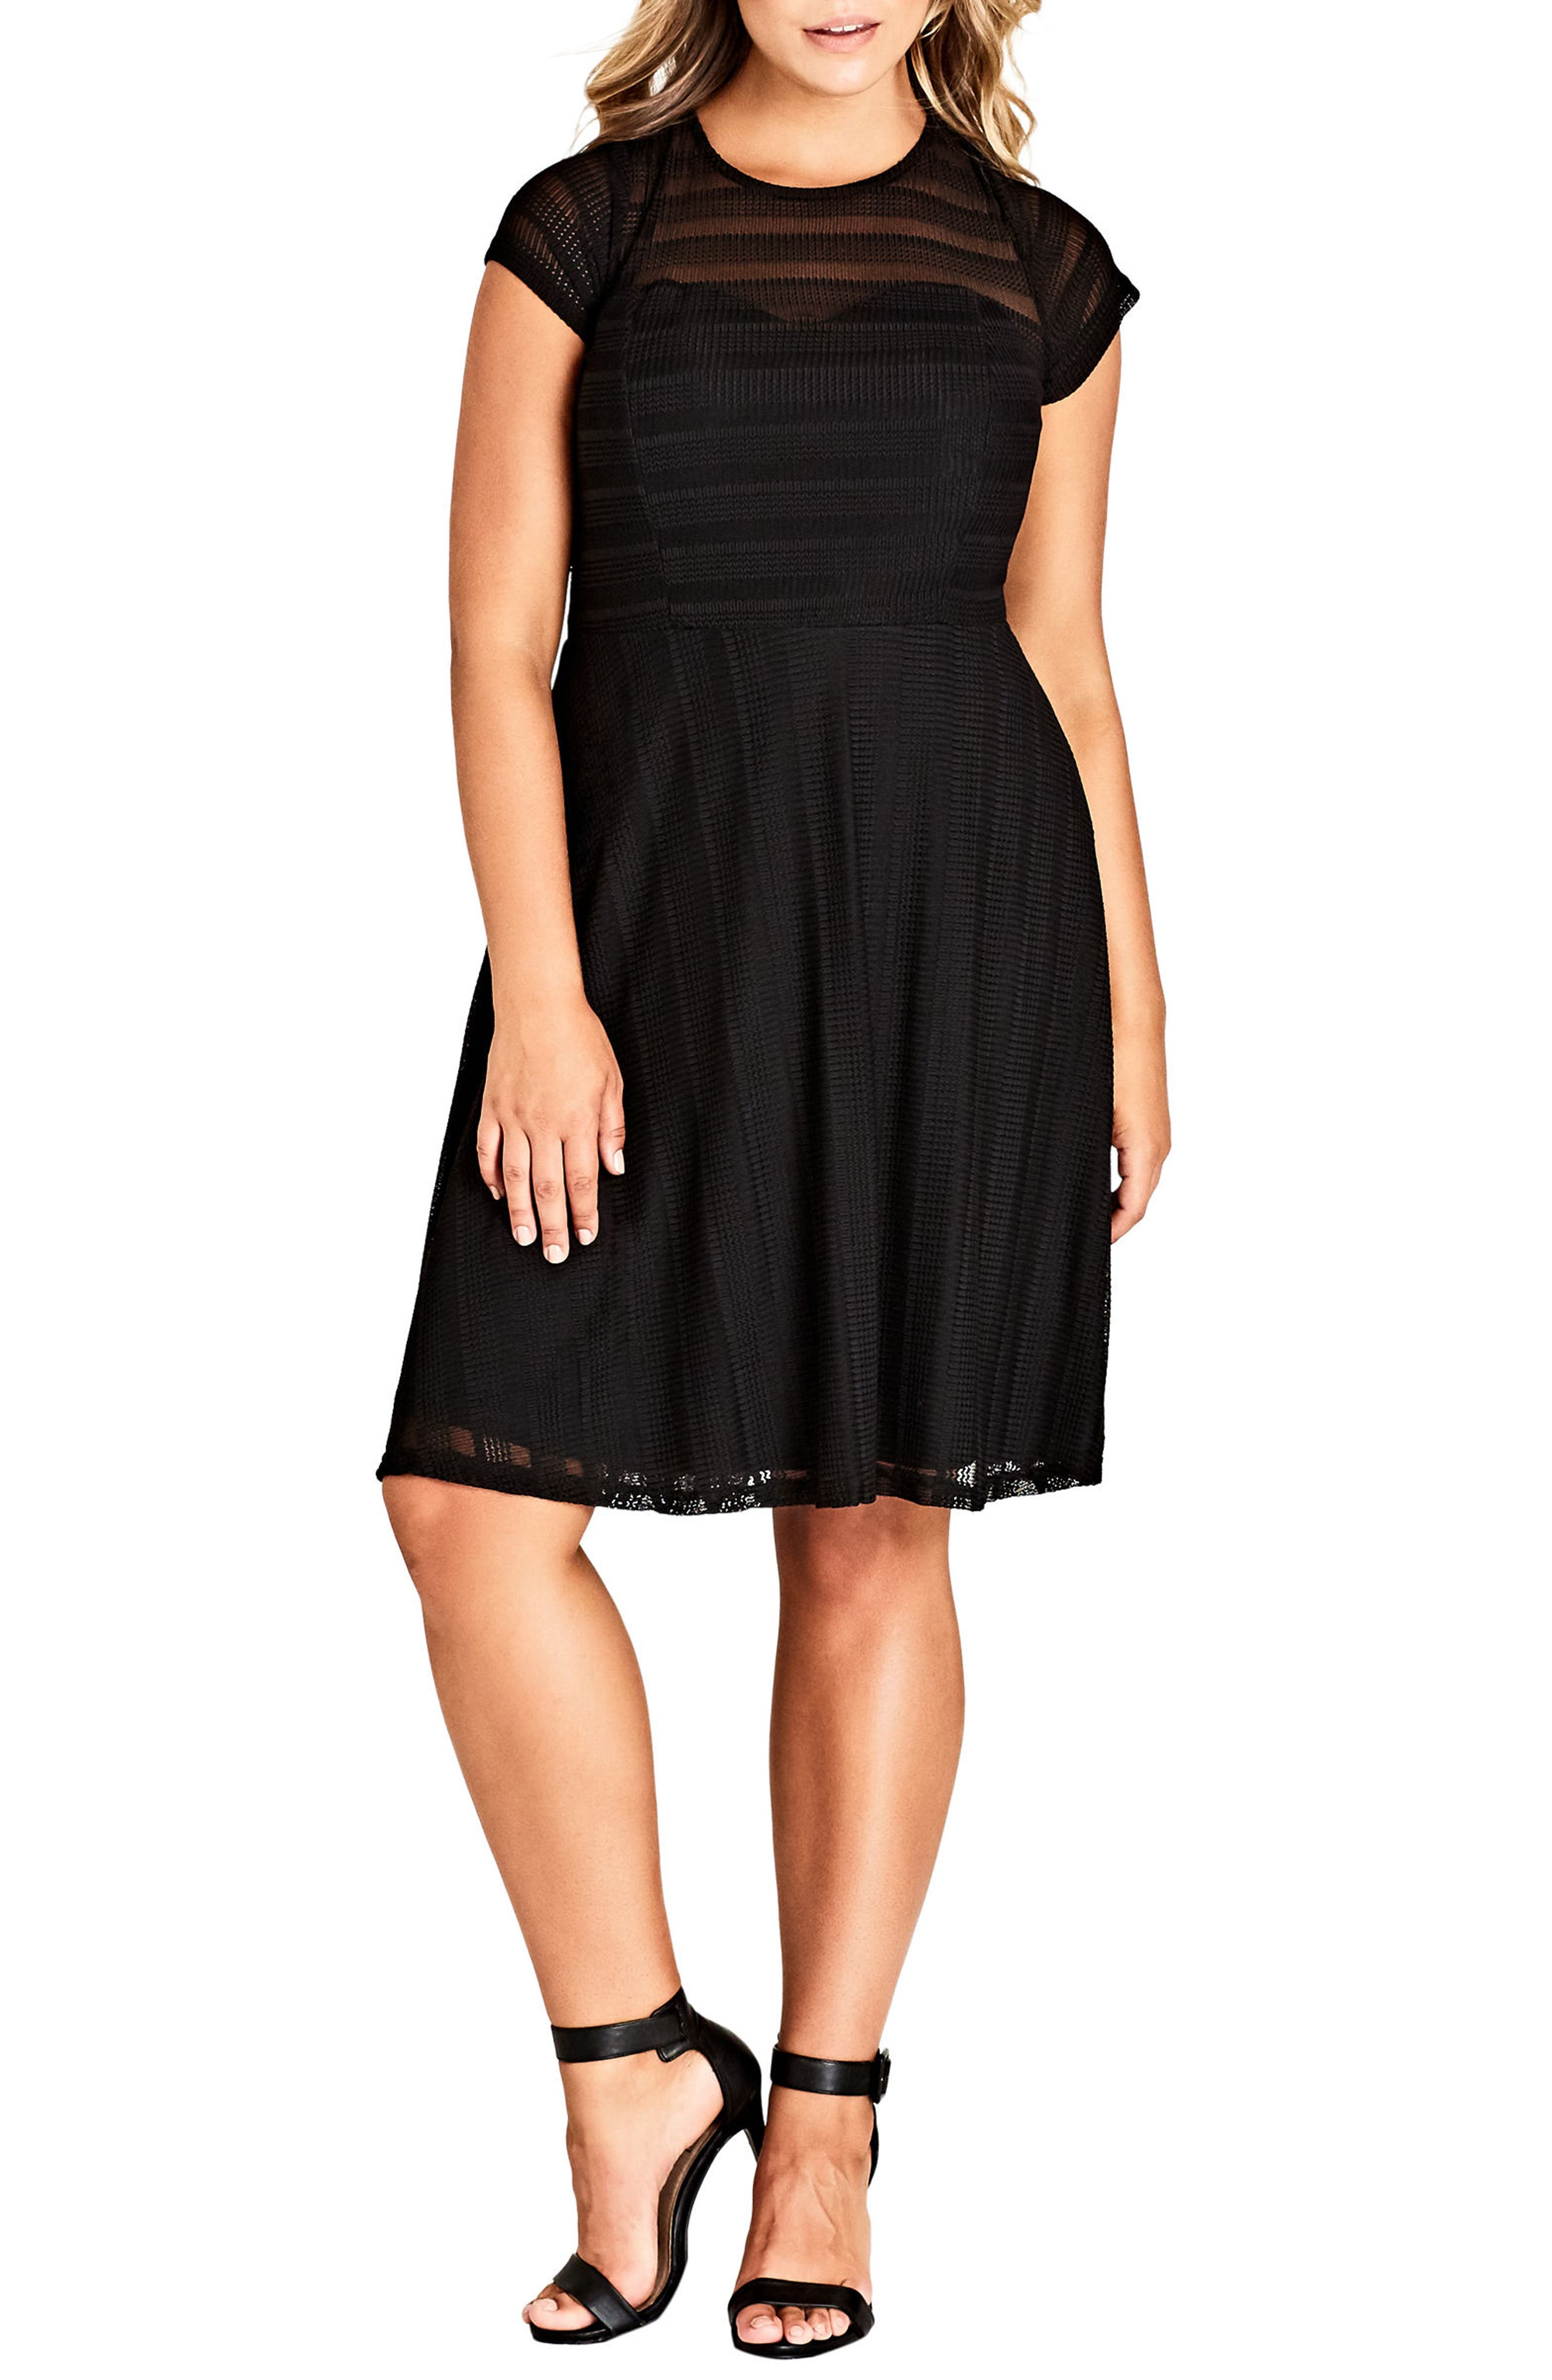 CITY CHIC Textured Heart Dress, Main, color, BLACK